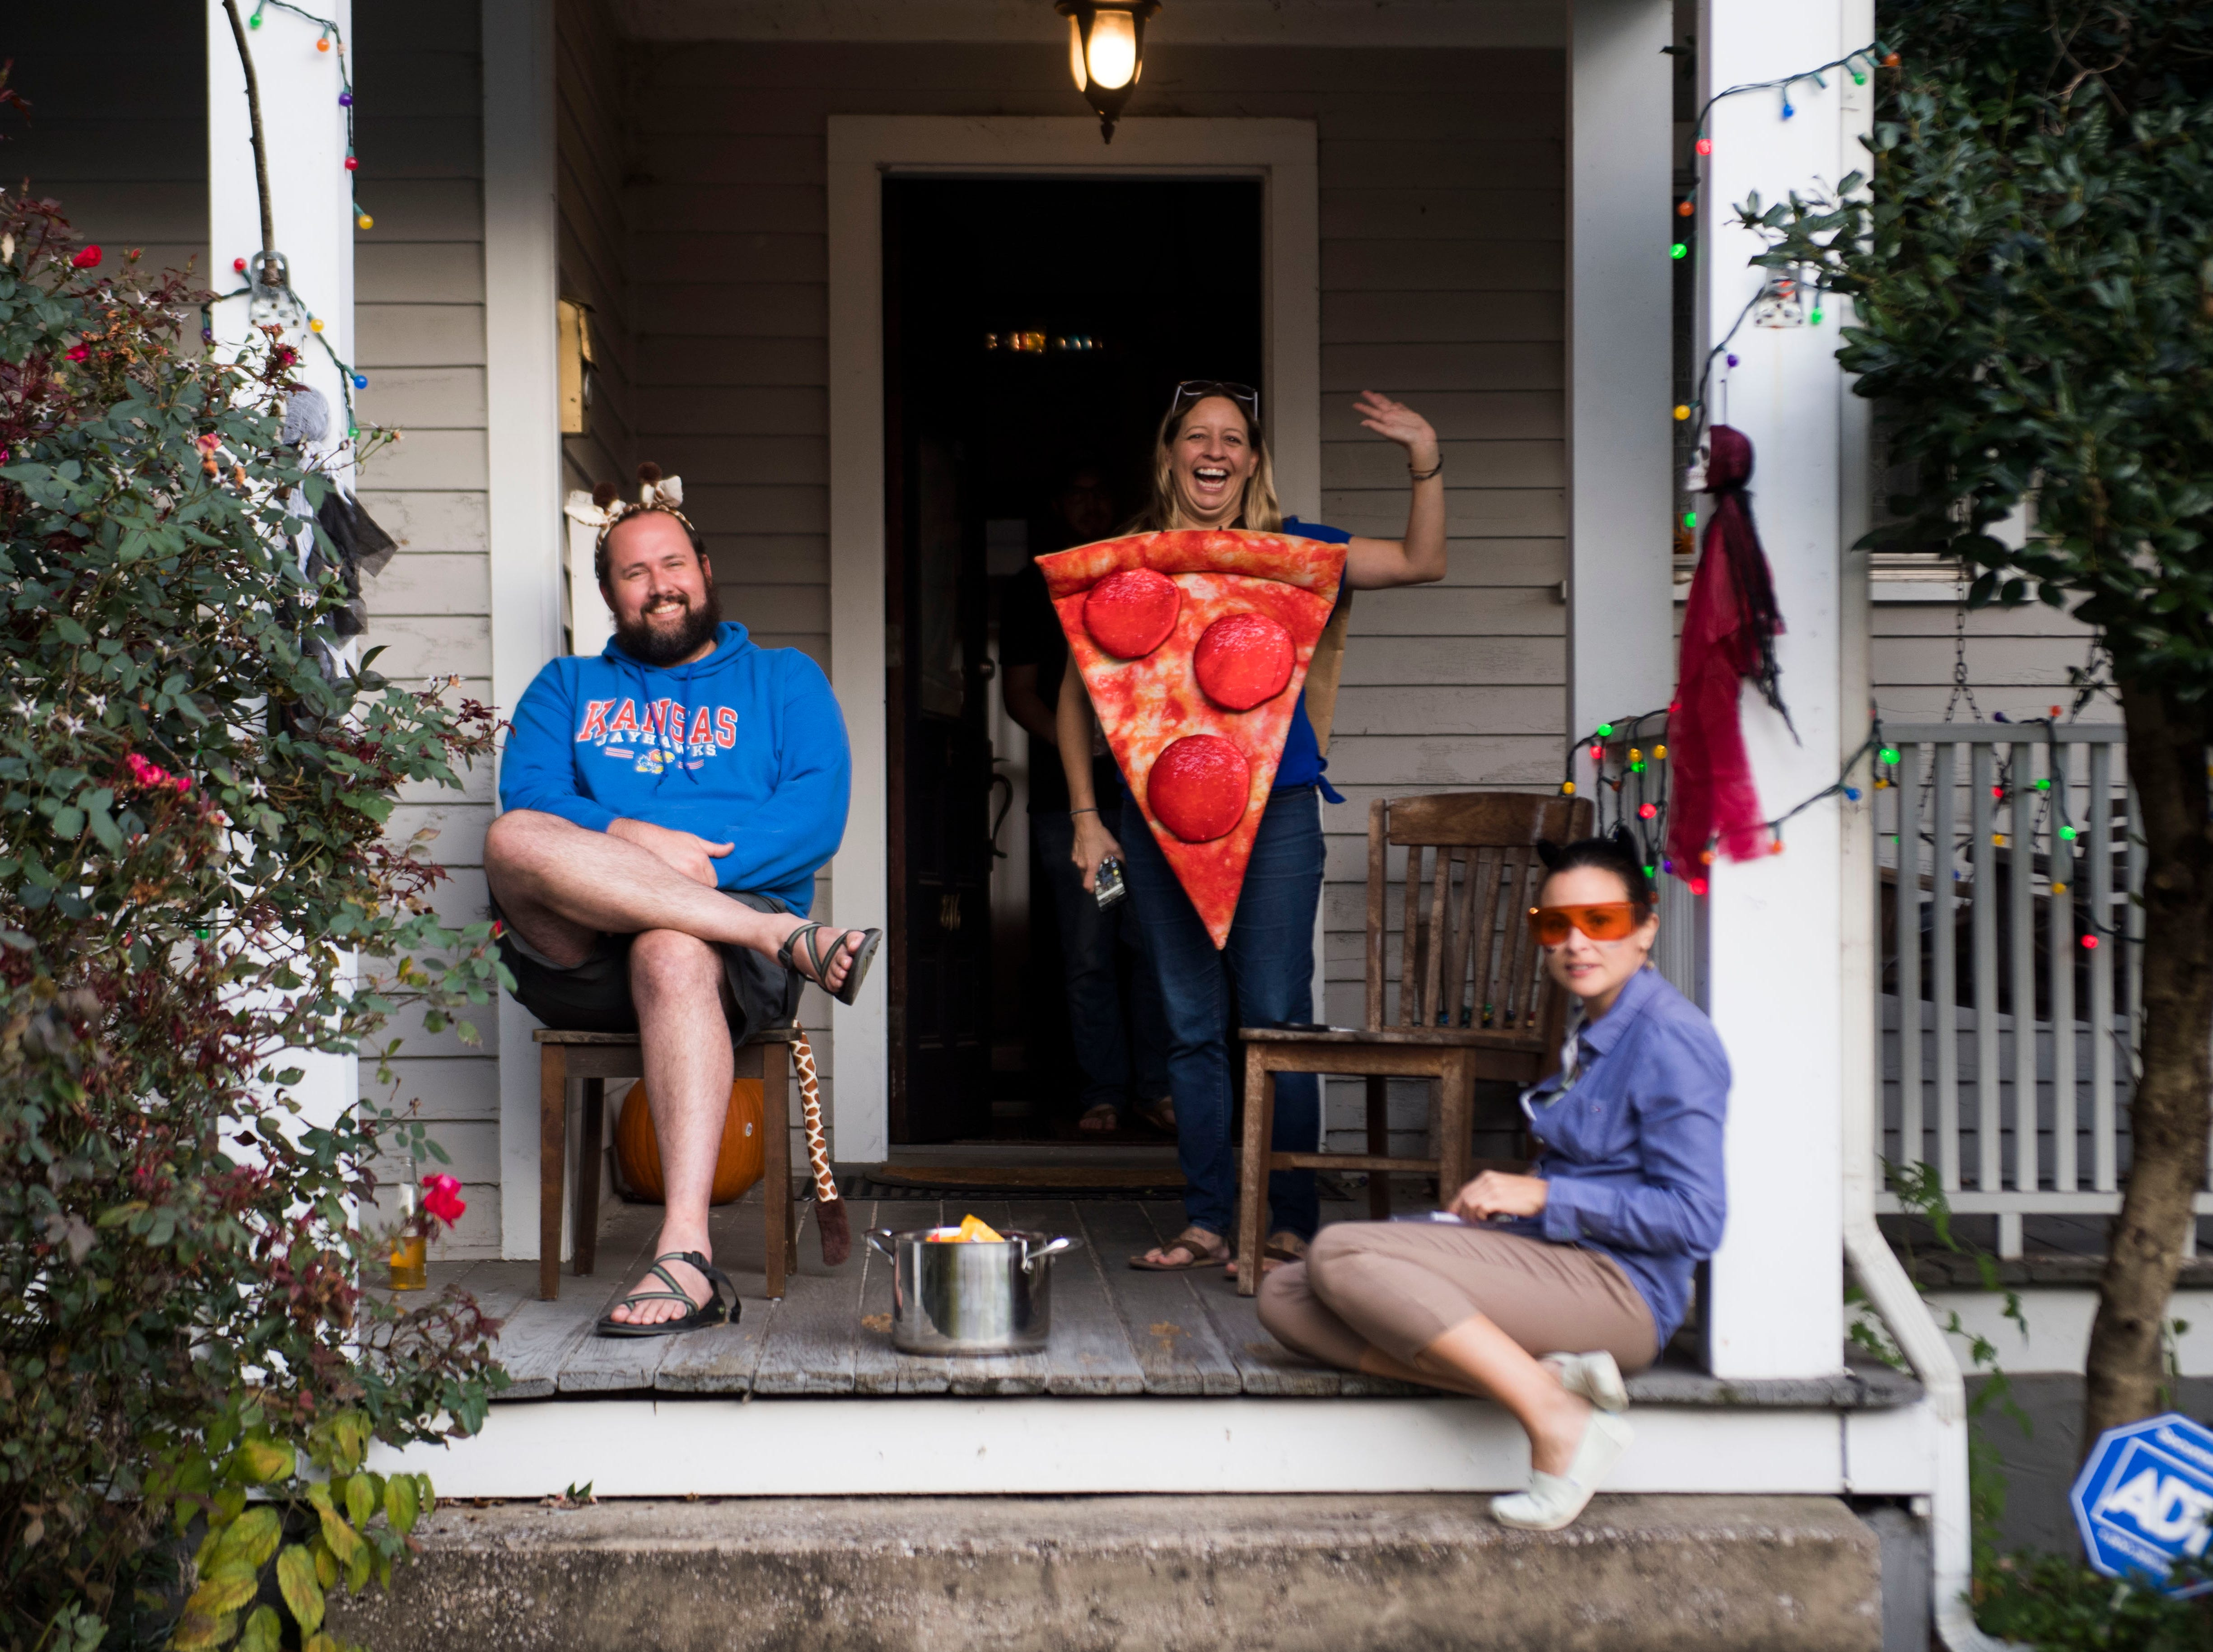 From left Tyson Paulson, Katie Kulhaui, Jess Welch, wait for children to trick-or-treat in the Fourth and Gill neighborhood in Knoxville, Wed. Oct. 31, 2018.